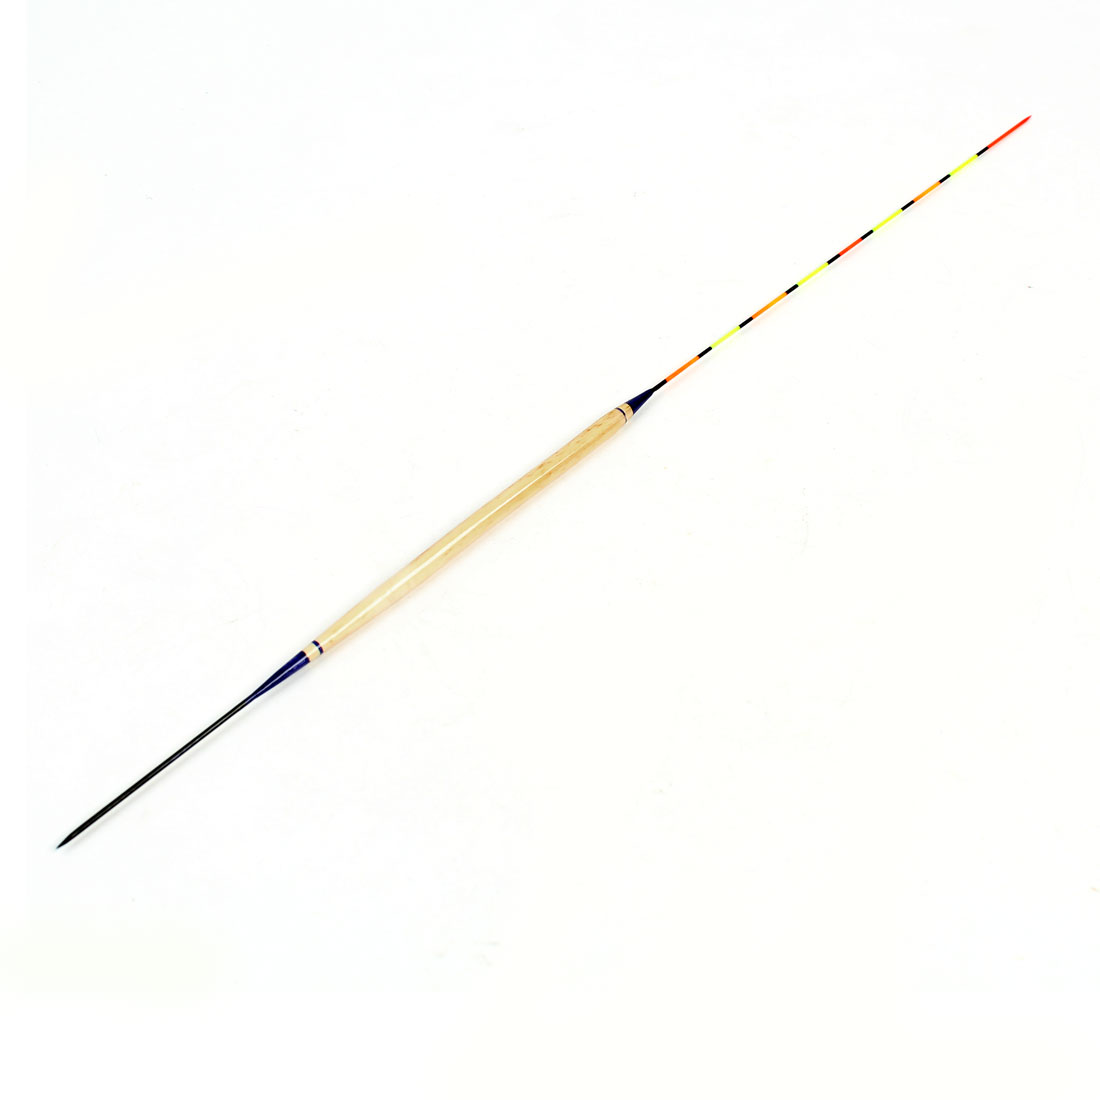 "Colorful Striped Fine Tip Plastic Fish Float Bobber Fishing Tackle 13.3"" Long"